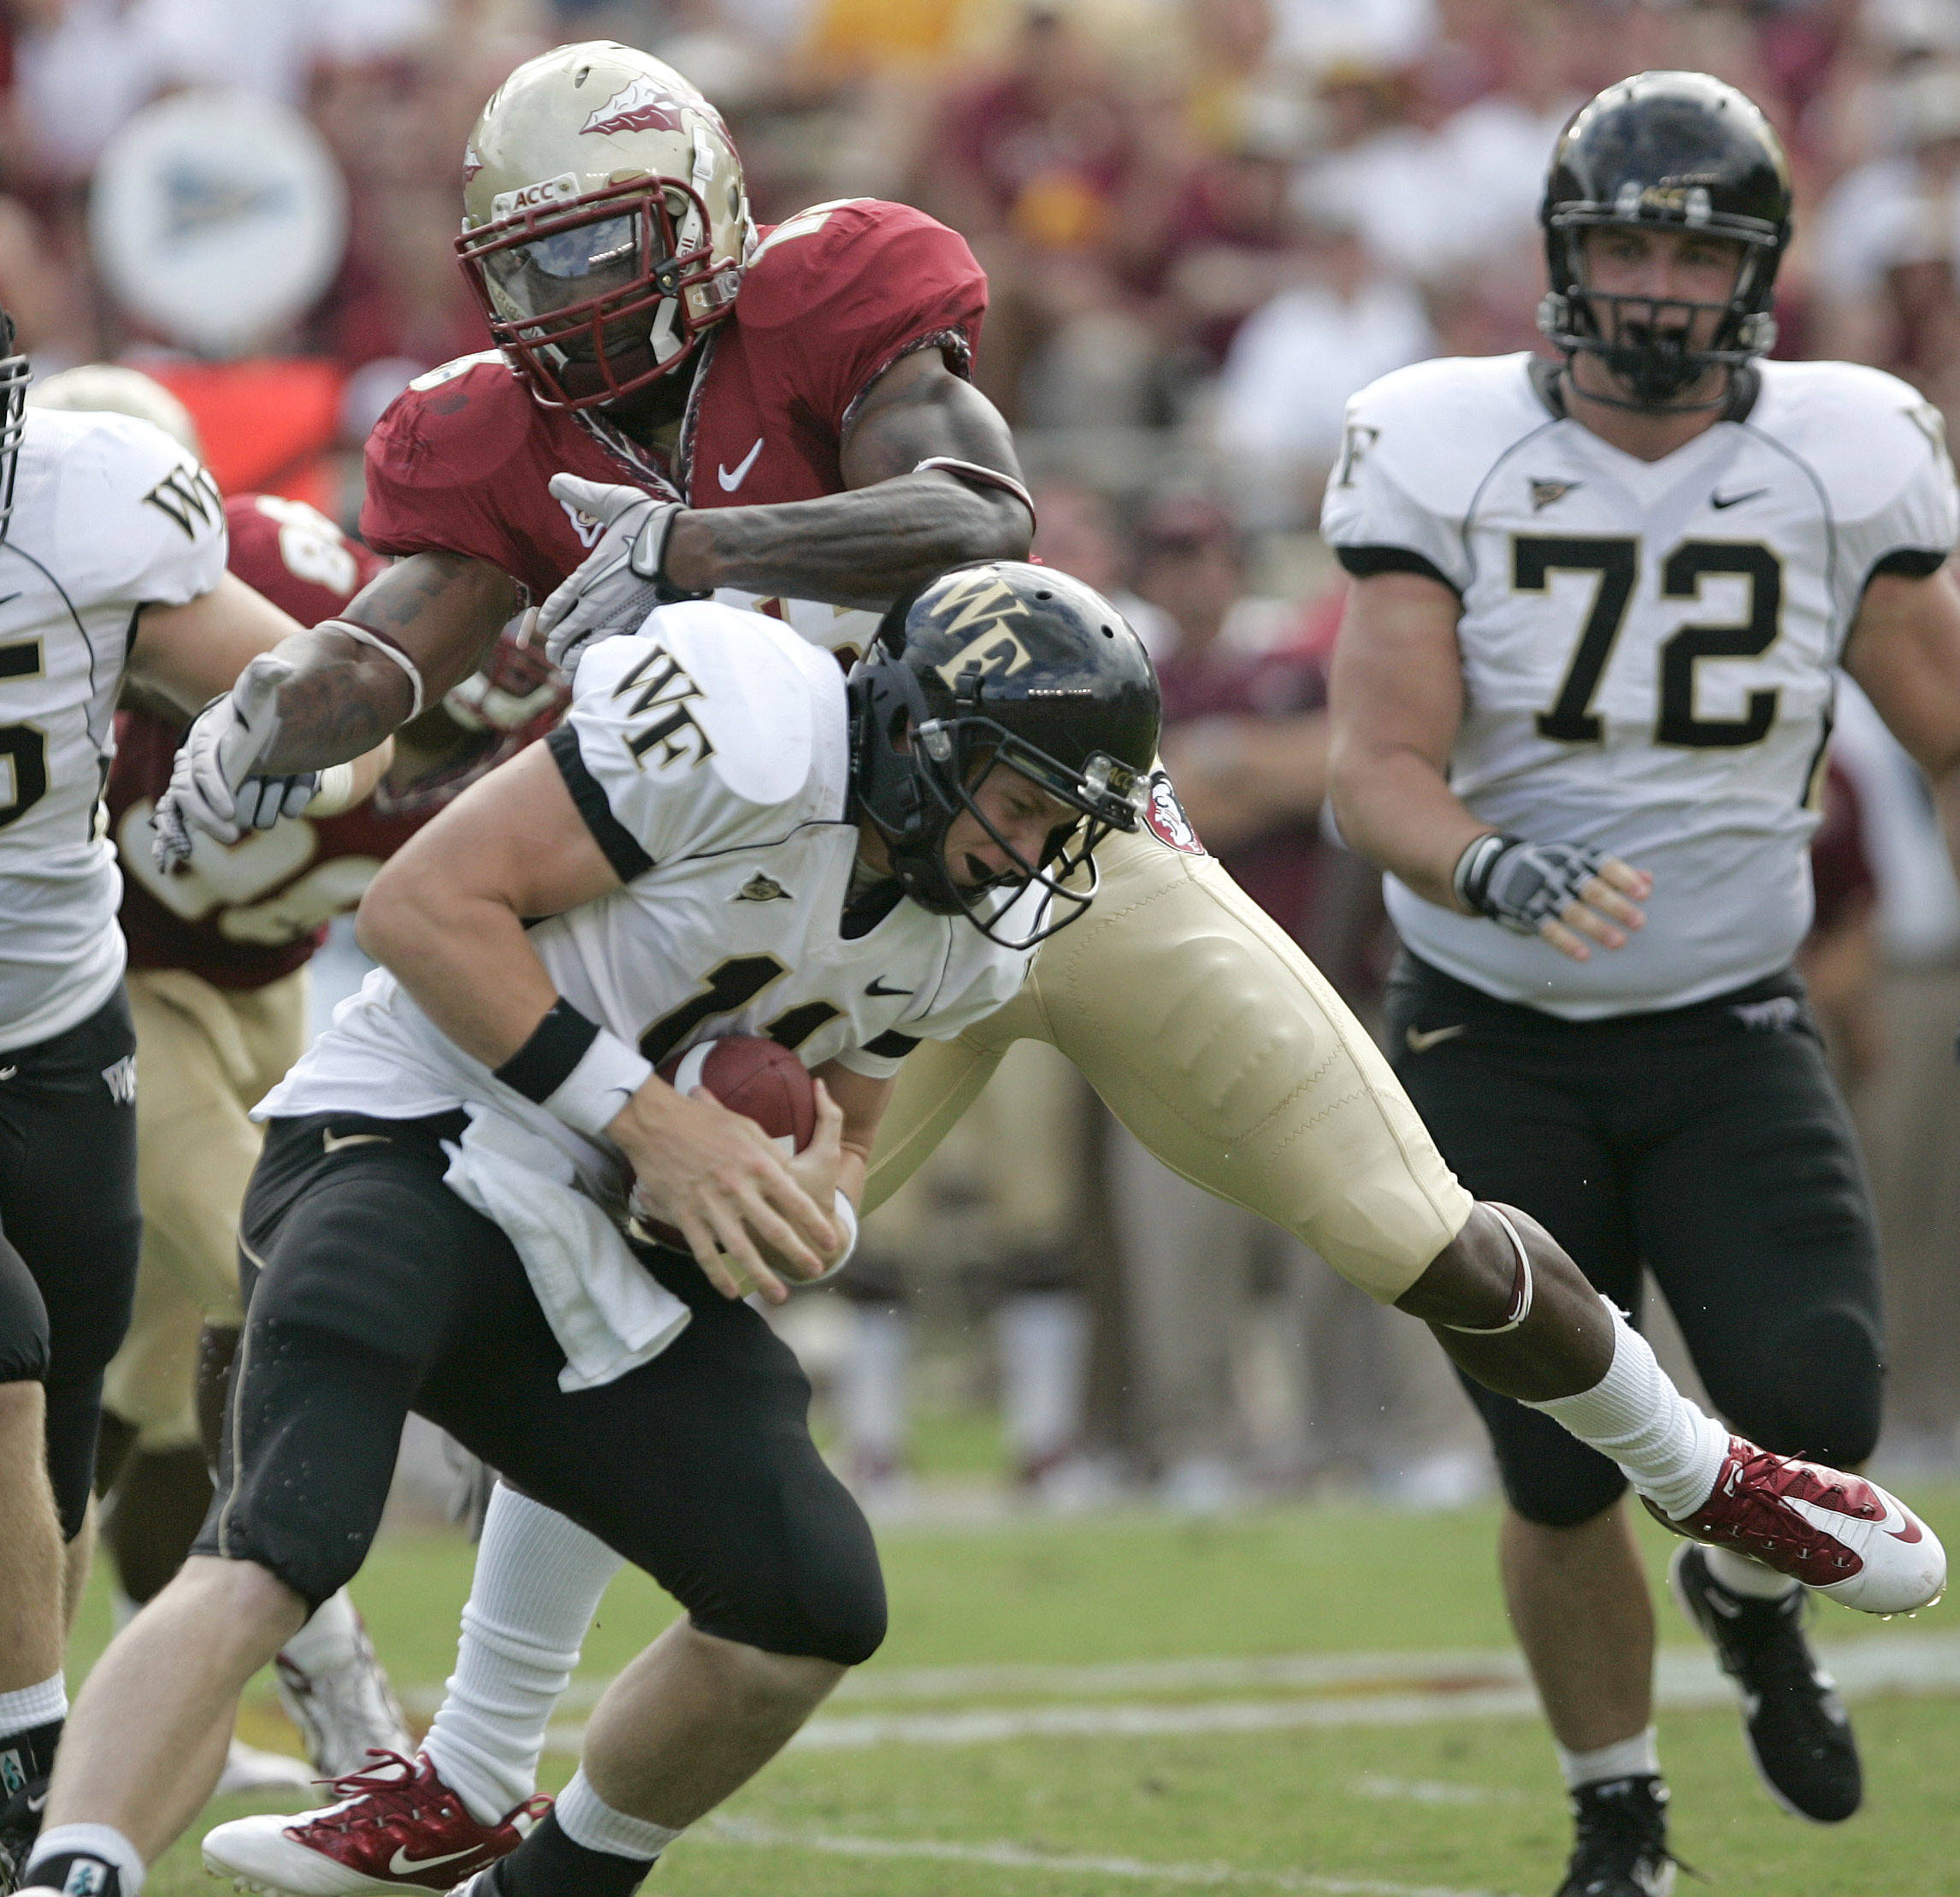 Wake Forest's Tanner Price, foreground, tries to avoid the tackle of Florida State's Nigel Bradham in the second quarter of an NCAA college football game on Saturday, Sept. 25, 2010, in Tallahassee, Fla. (AP Photo/Steve Cannon)